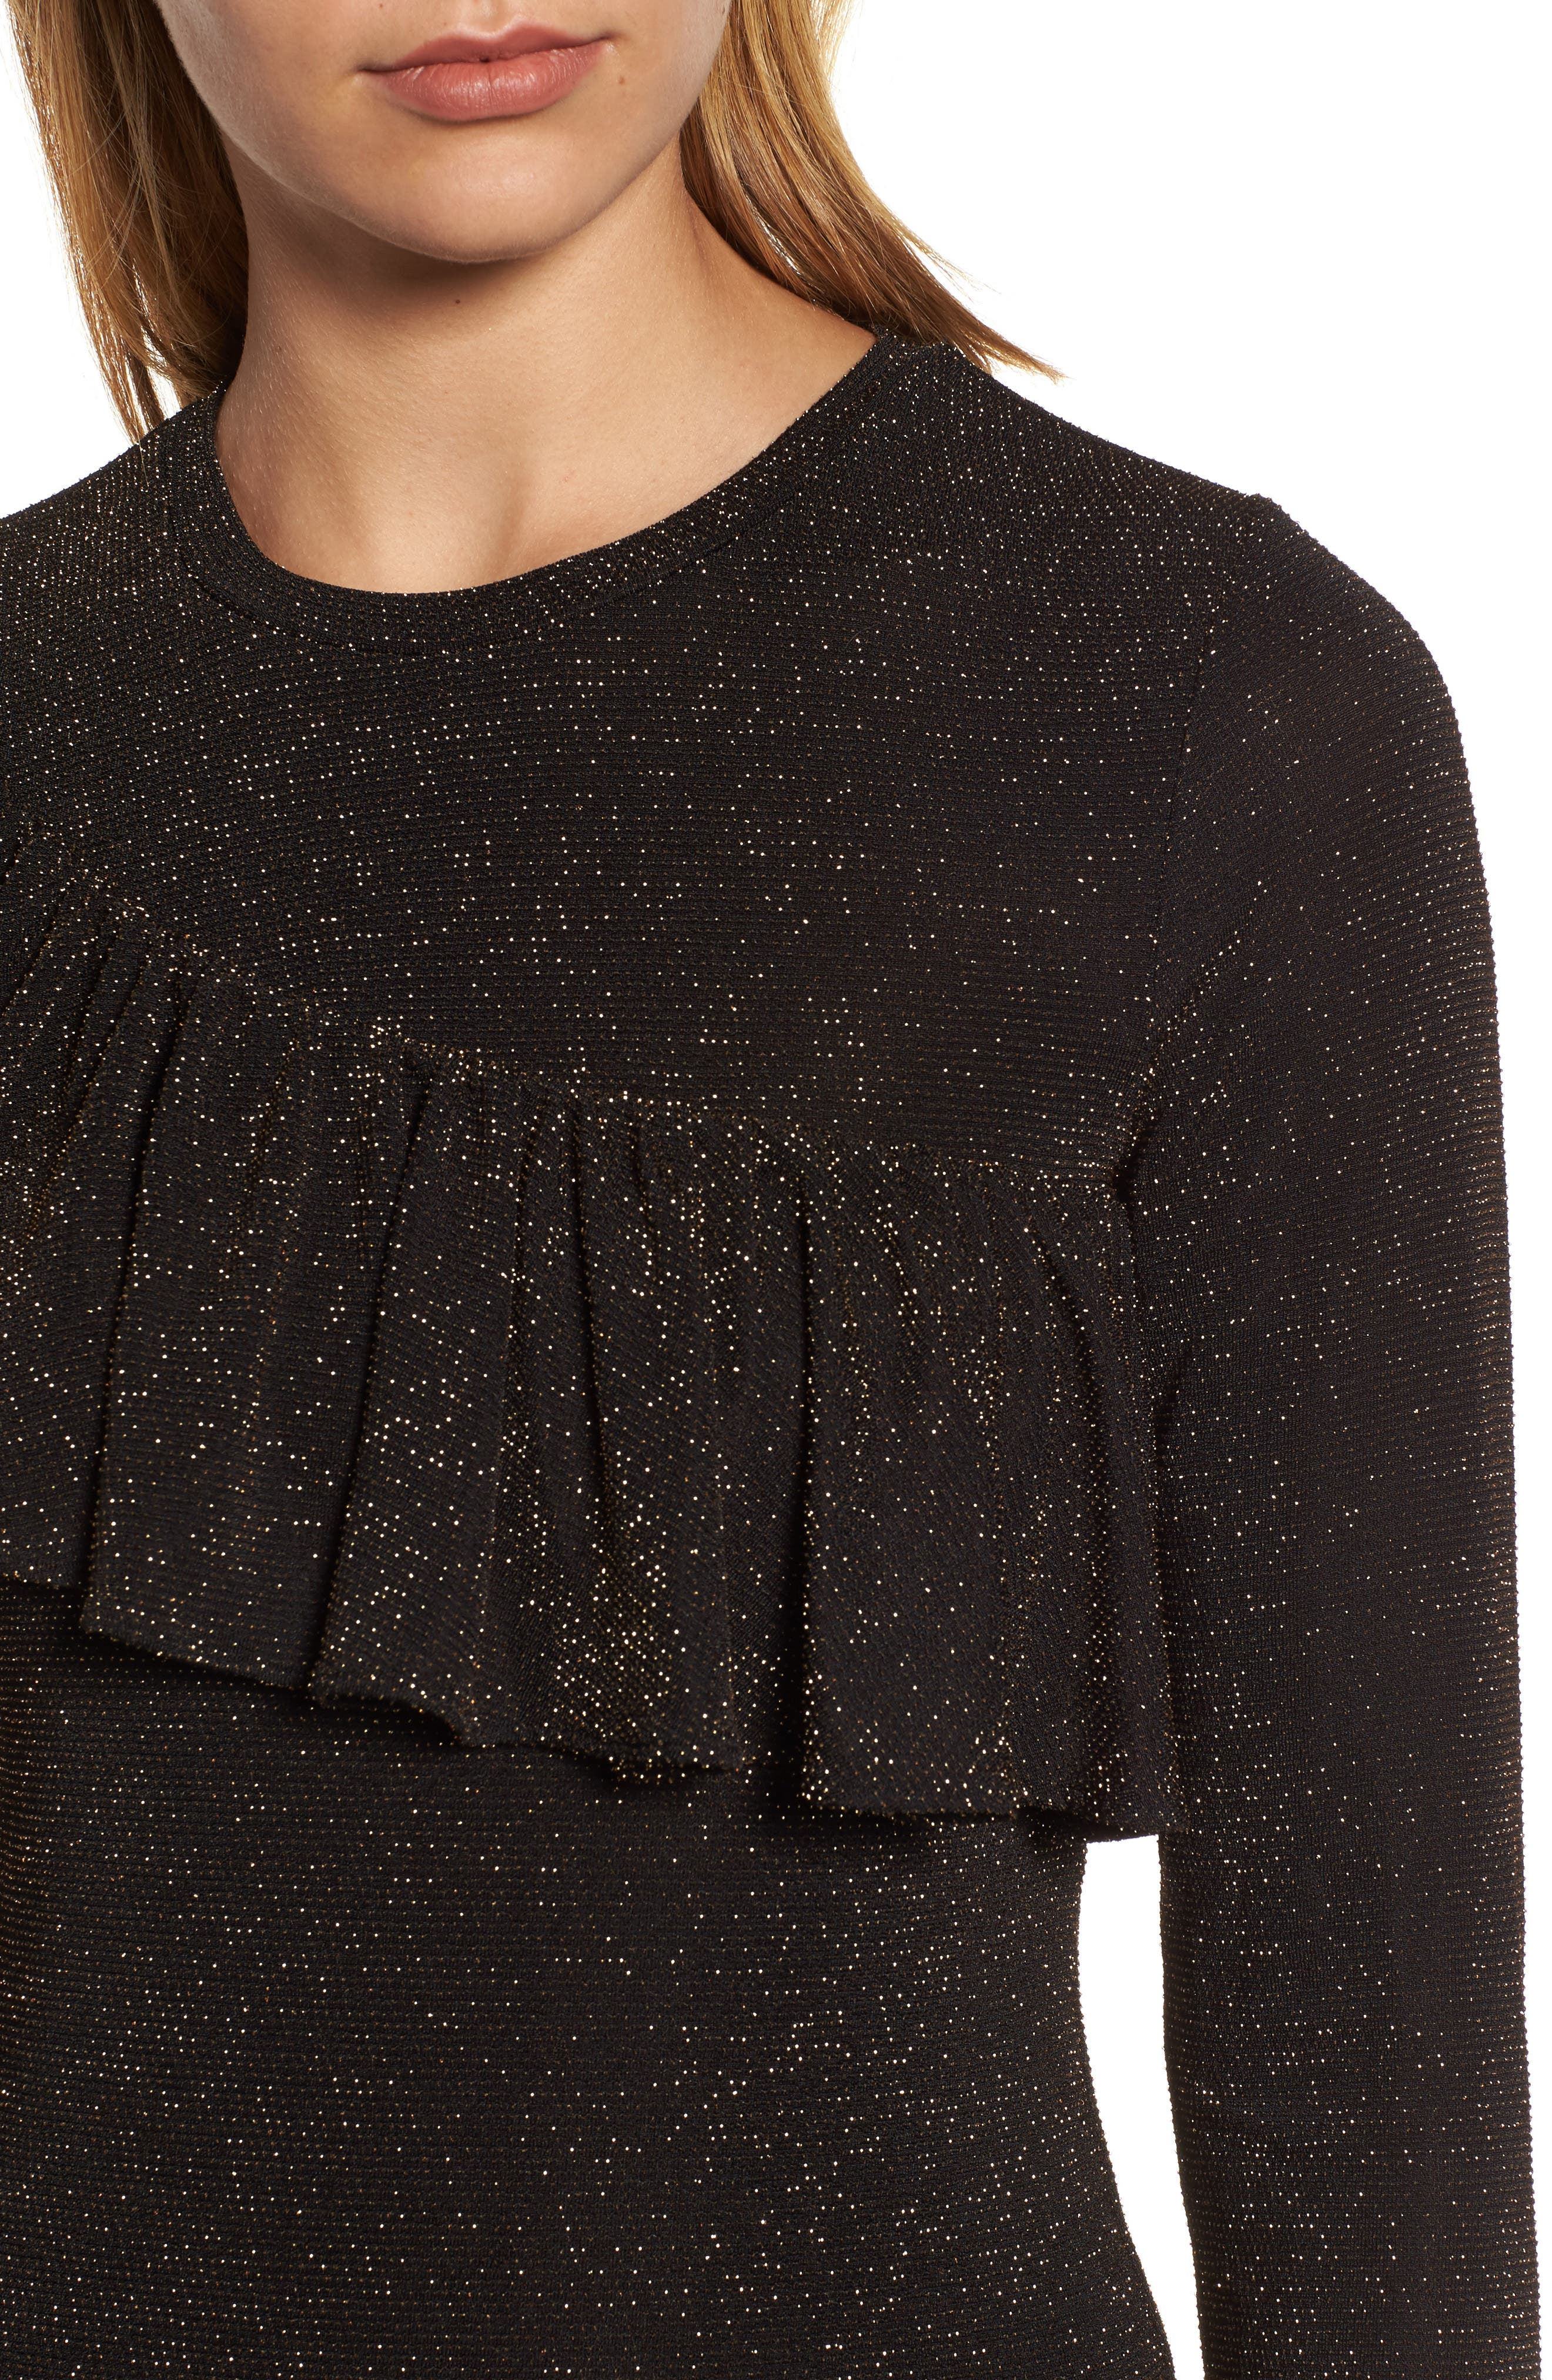 Metallic Ruffle Top,                             Alternate thumbnail 4, color,                             Black/ Silver